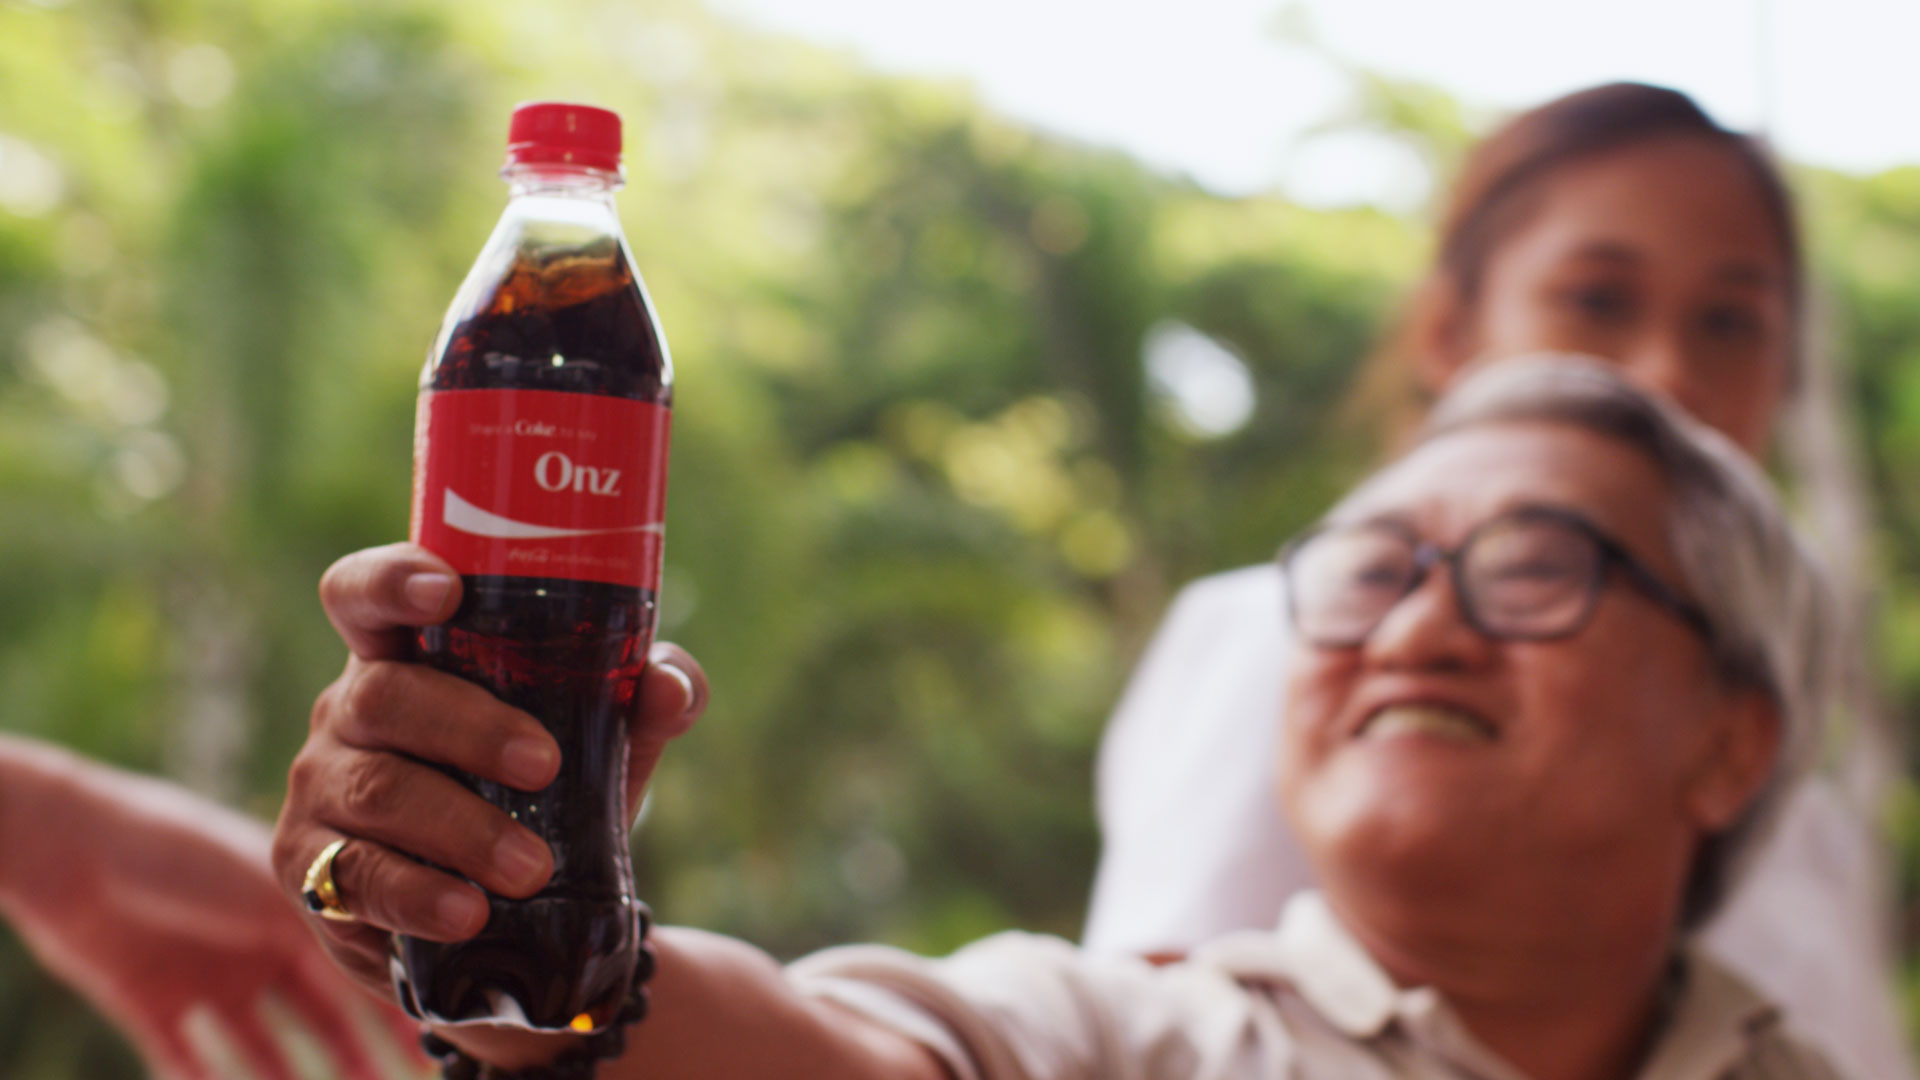 TV Commercial Production Singapore share a coke